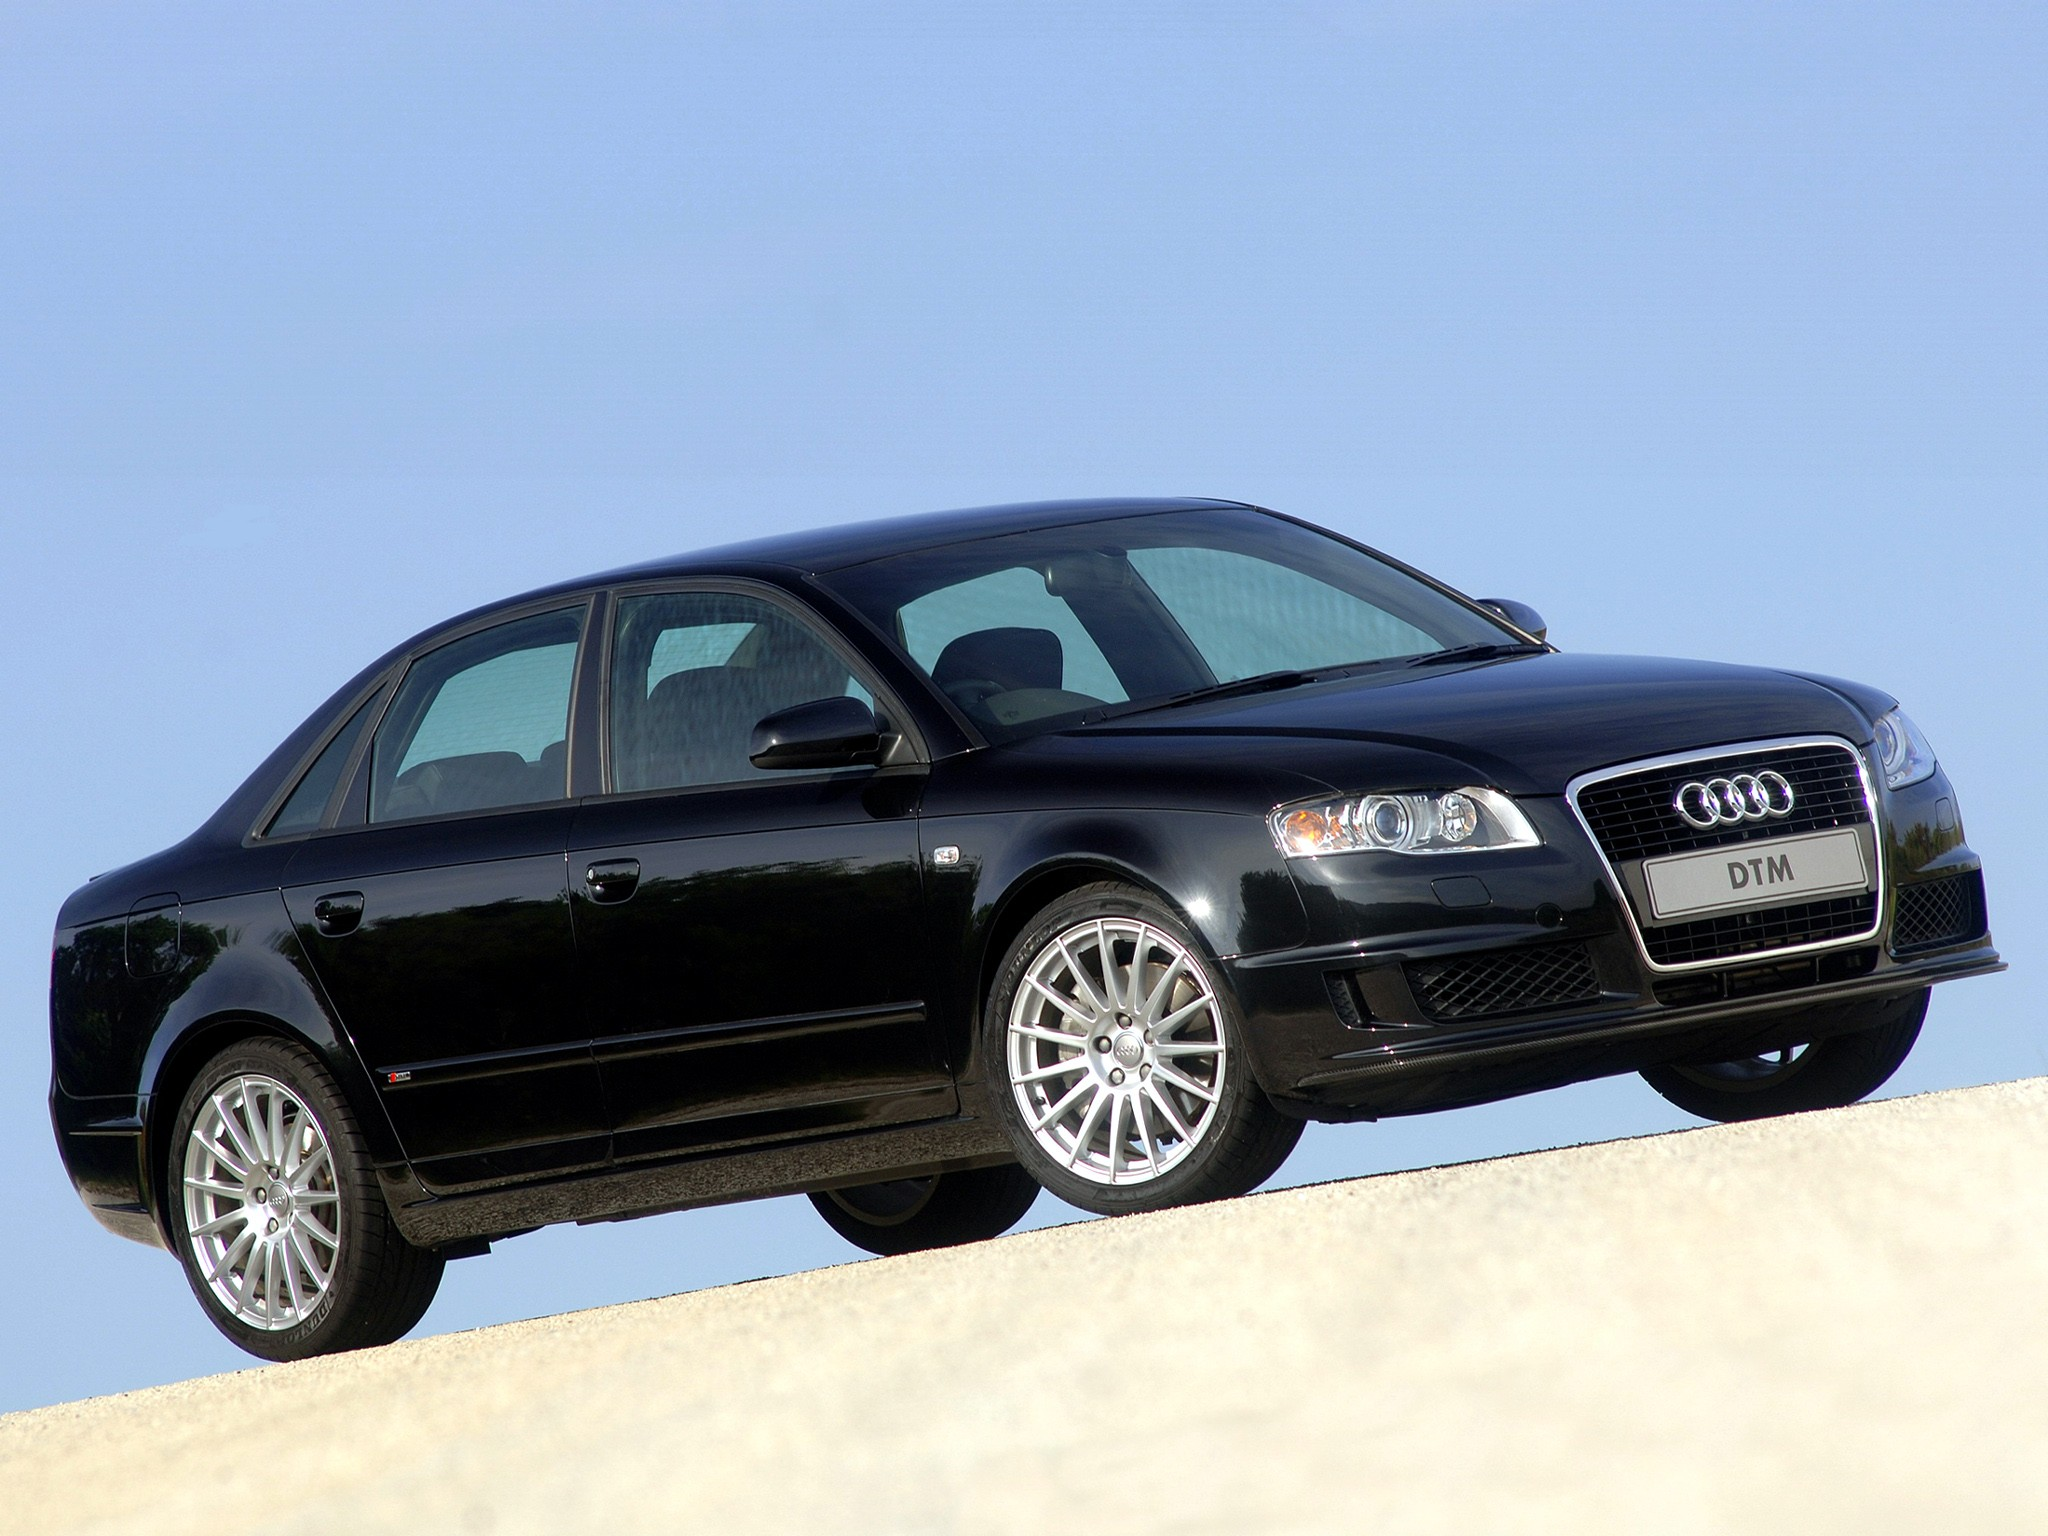 AUDI A4 DTM Edition specs & photos - 2005, 2006, 2007 - autoevolution